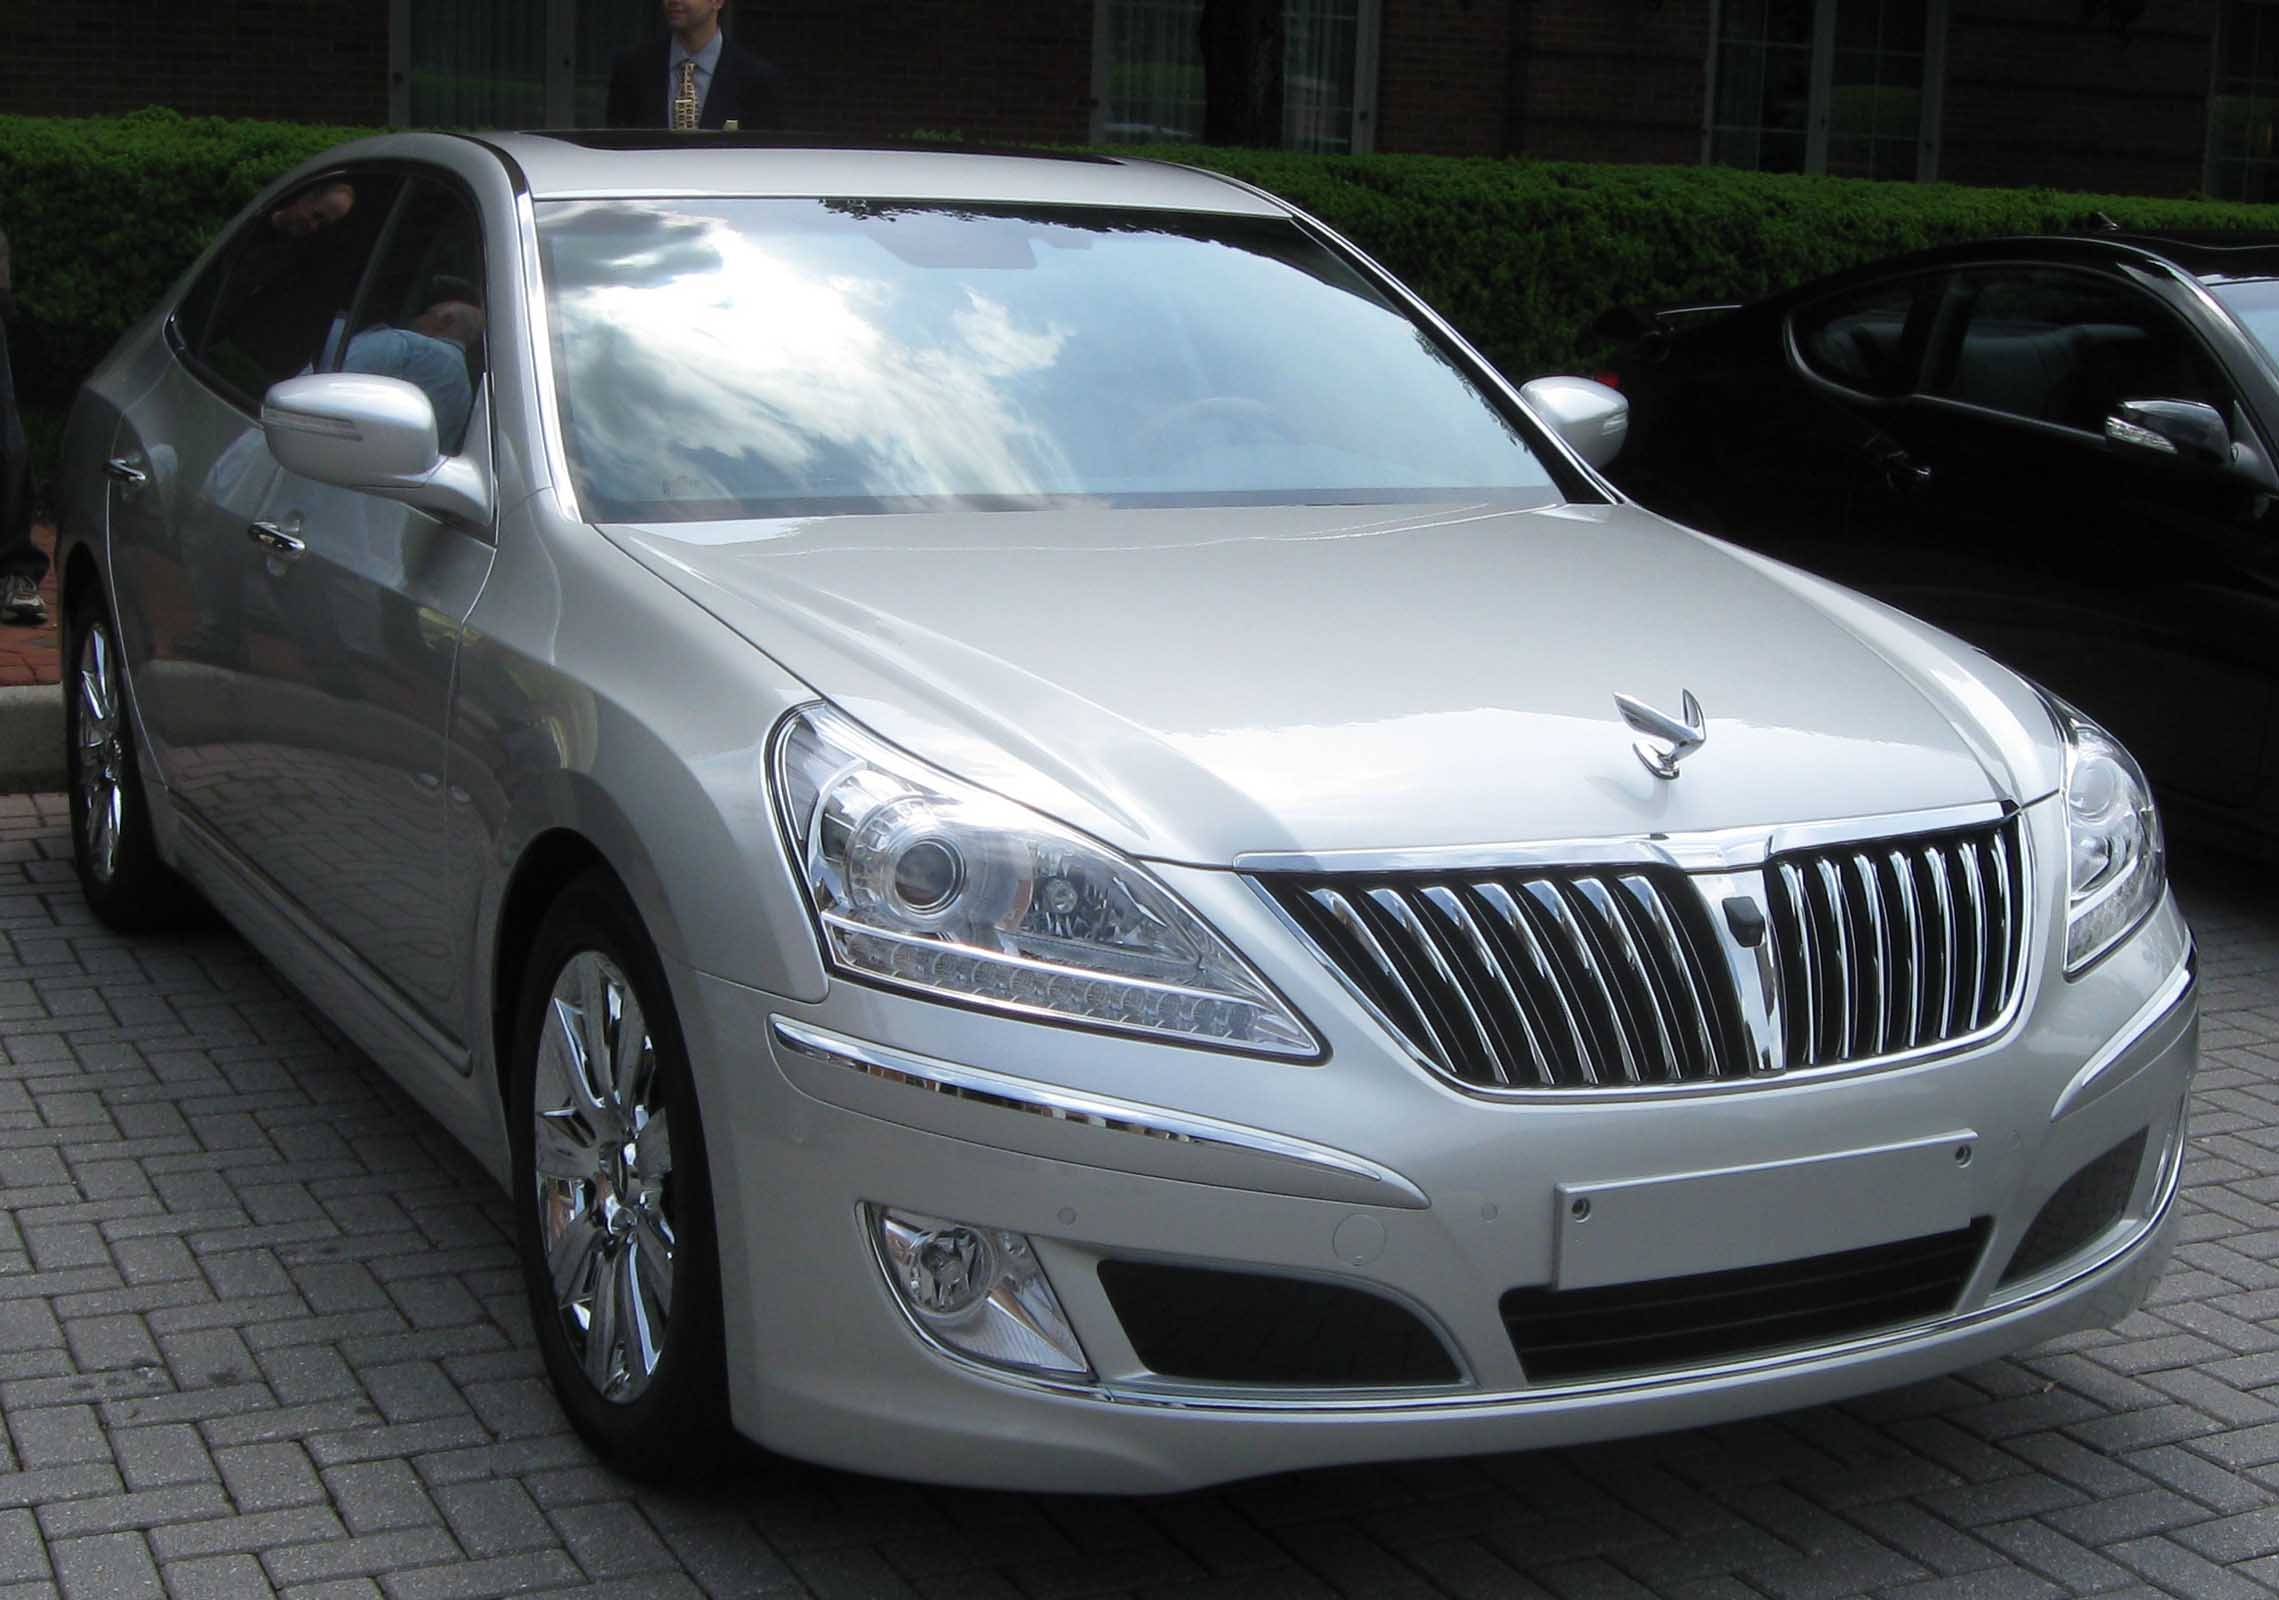 File:Hyundai Equus VS460 2.jpg - Wikipedia